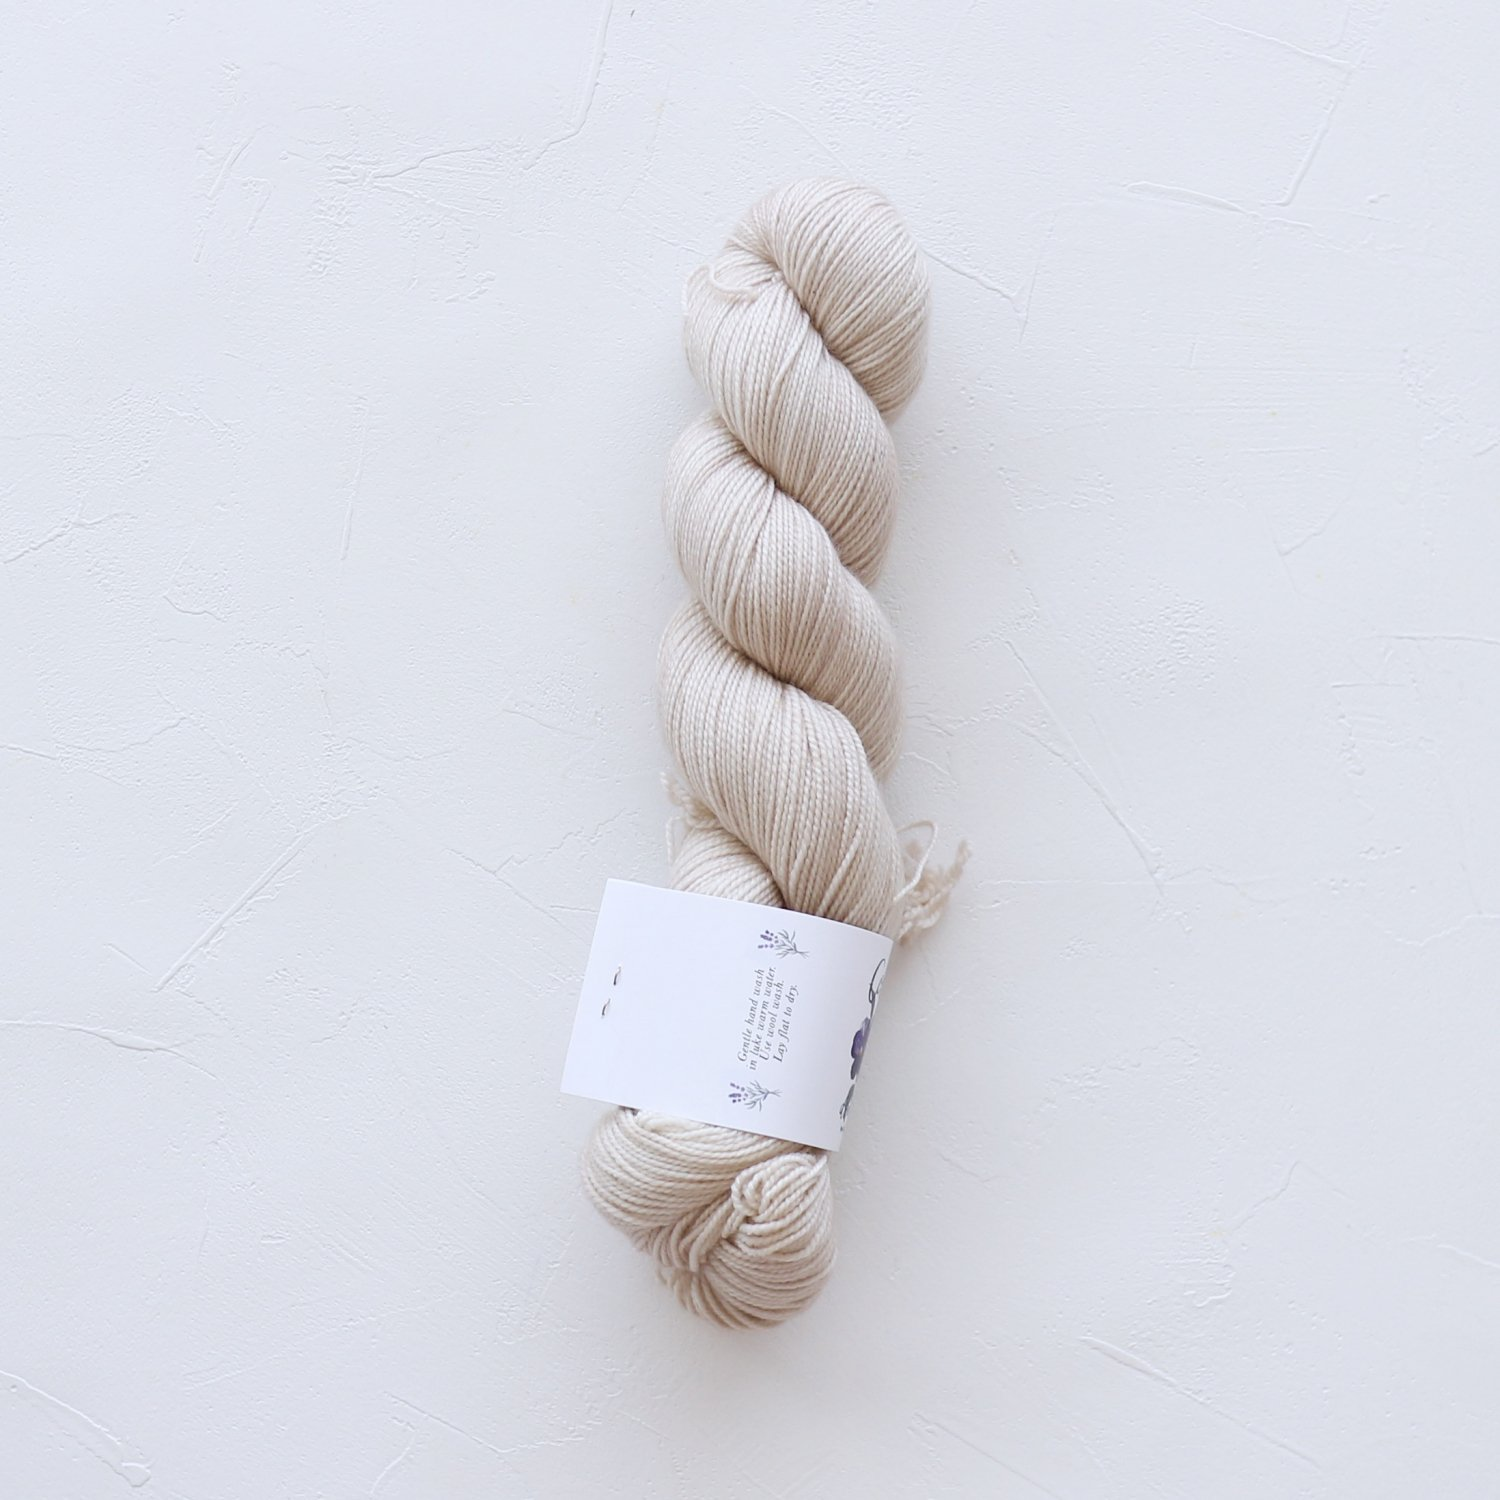 【Cosy Posy Yarn】<br>SOFT & COSY<br>Moonstone